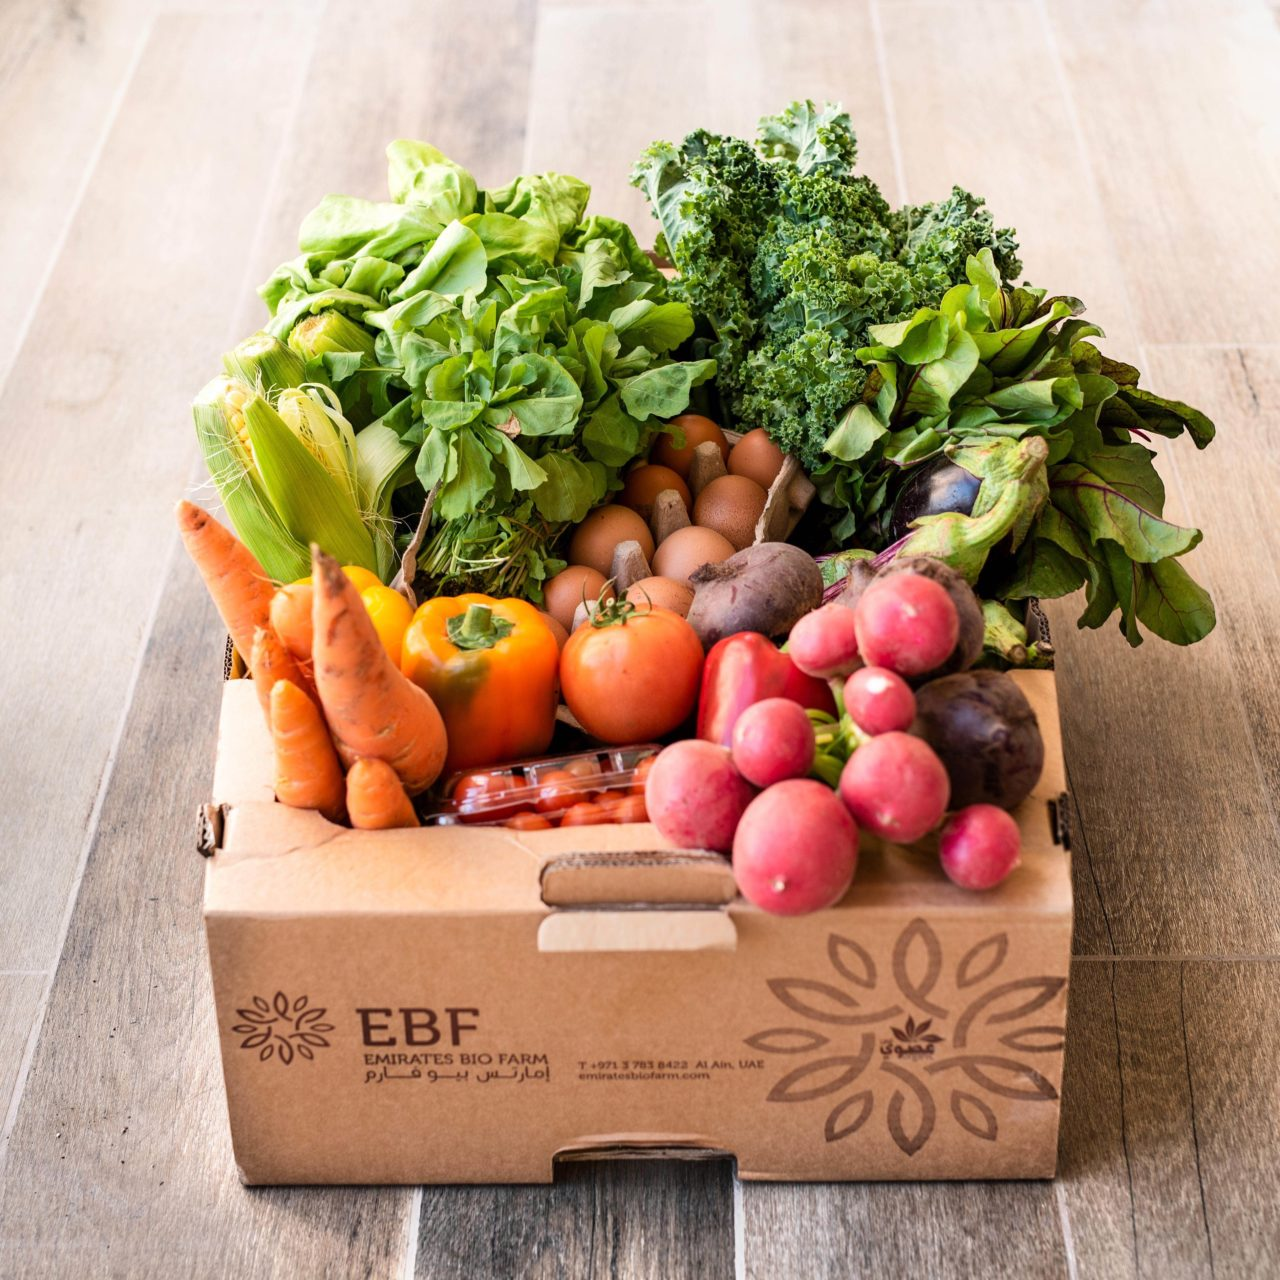 Emirates Bio Farm box